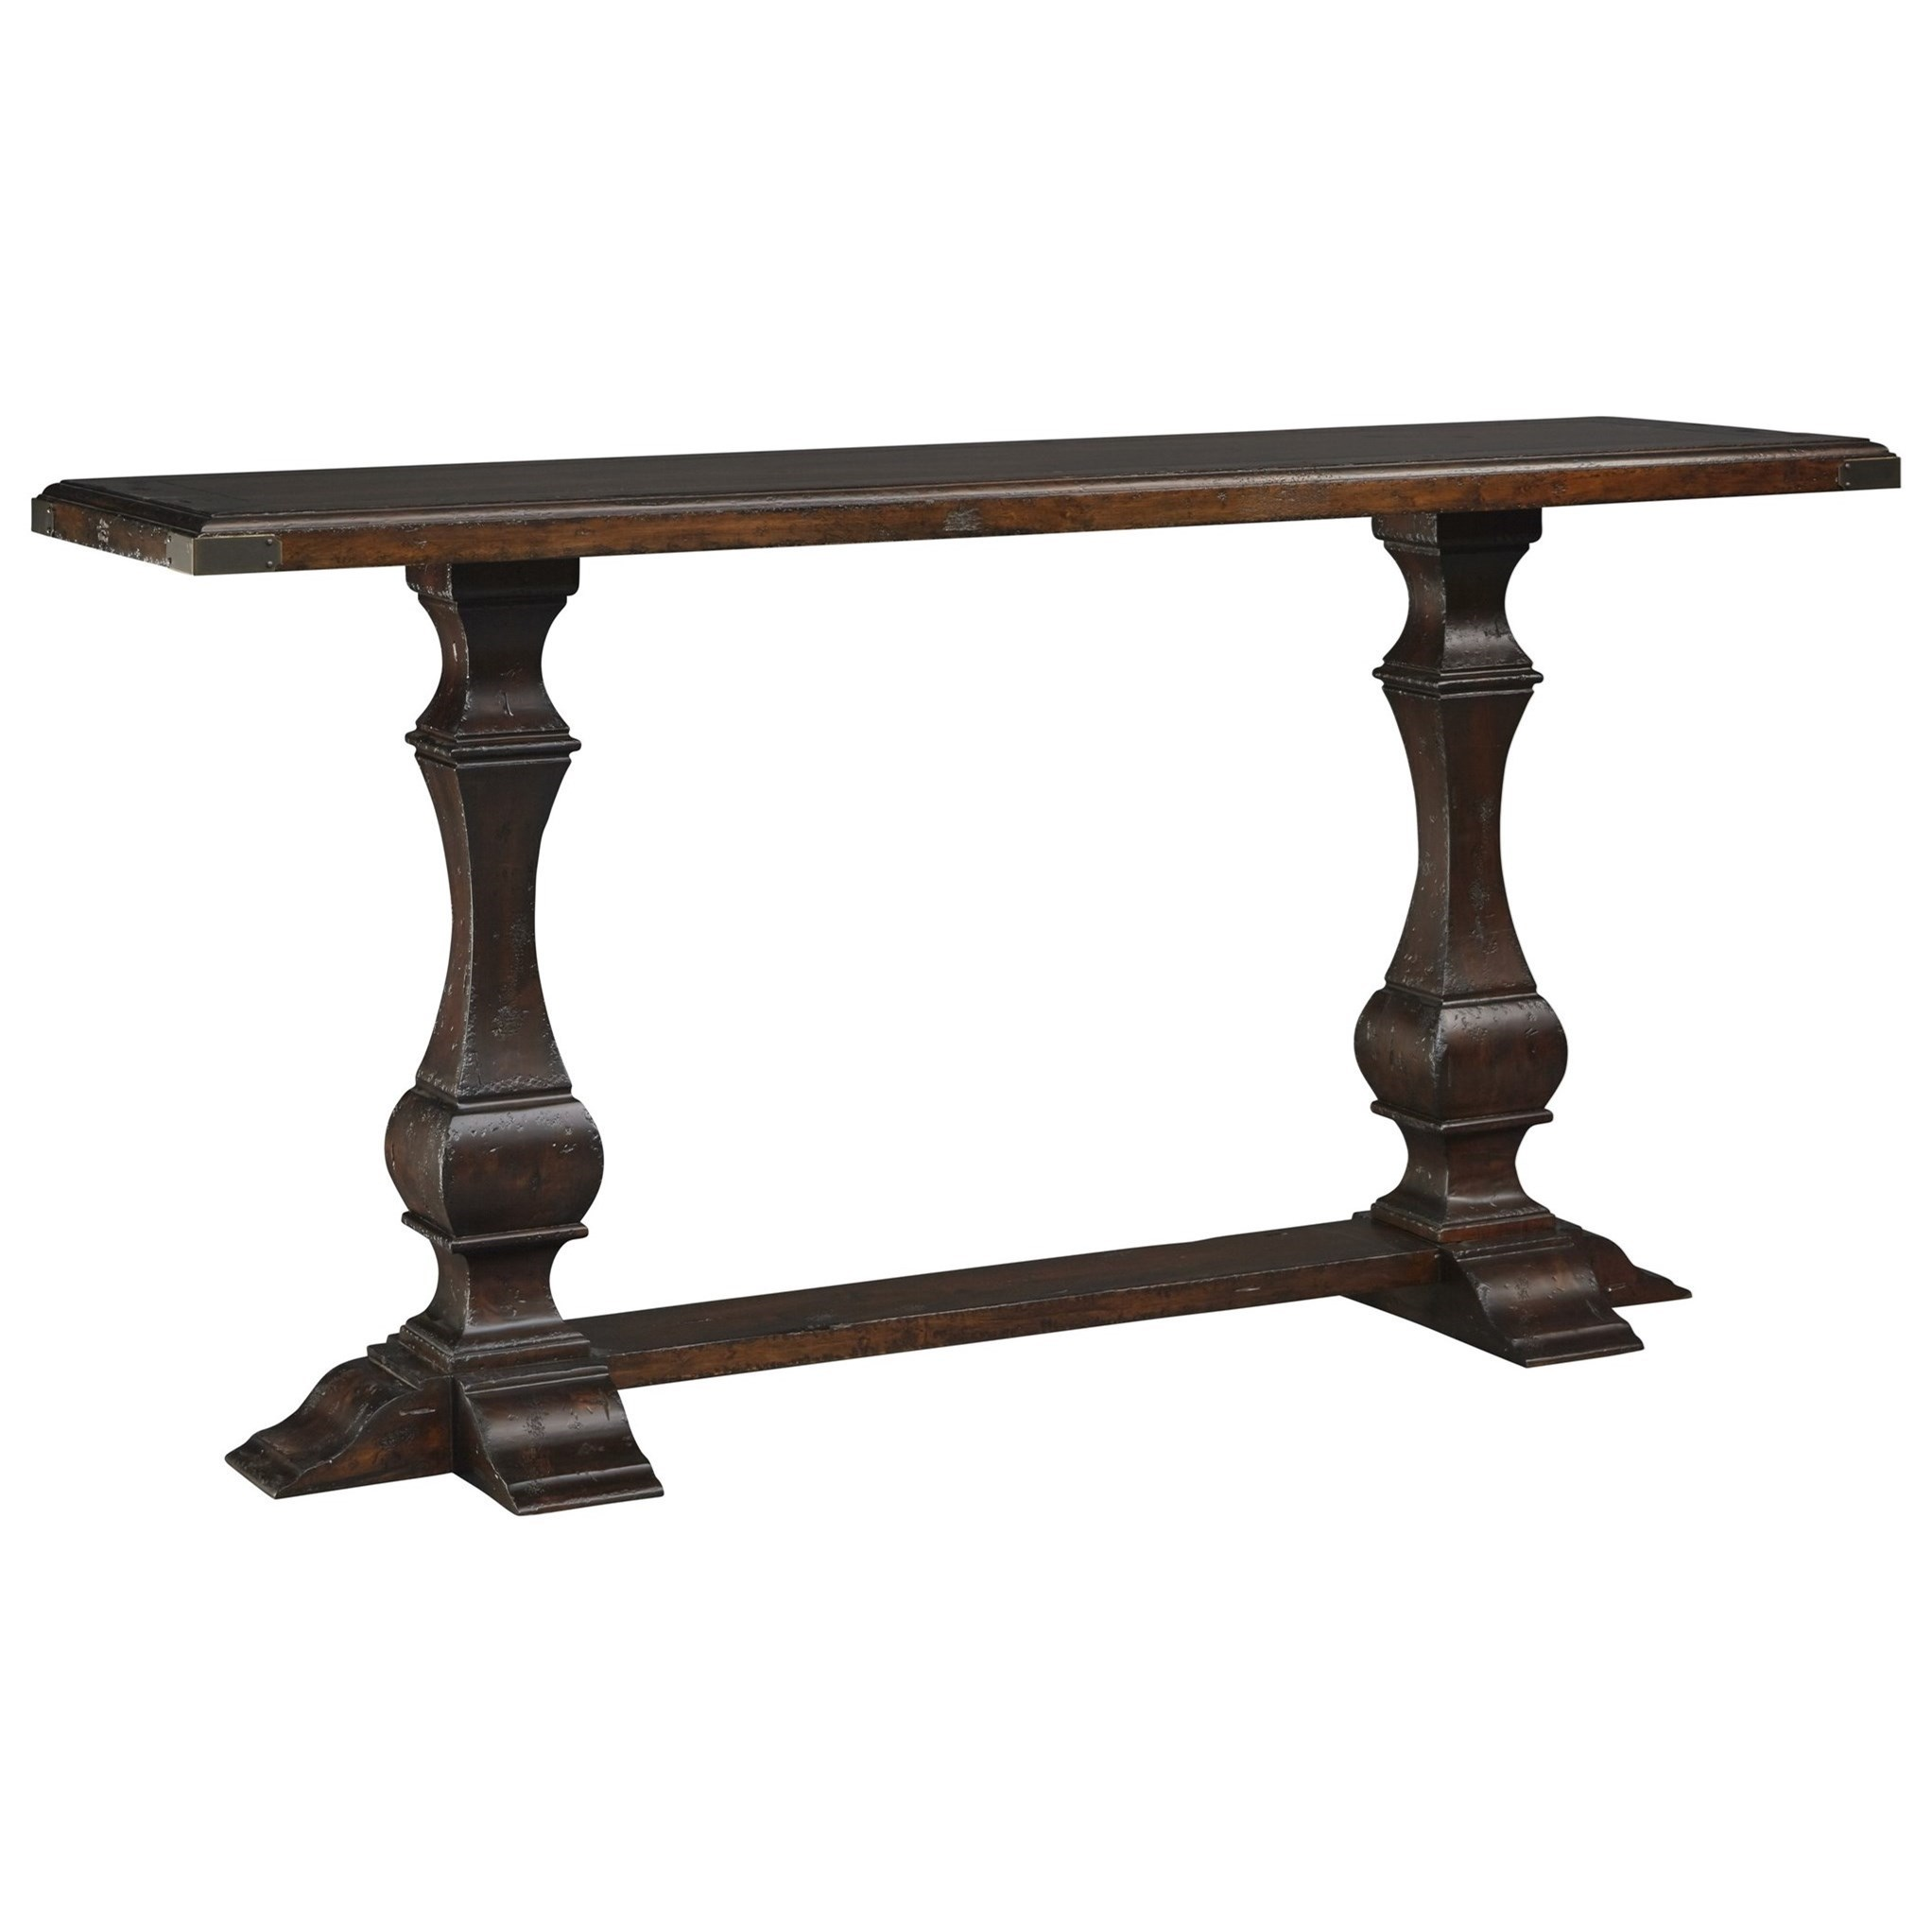 Stein World Sandifer Carved Sofa Table With Metal Corner Accents